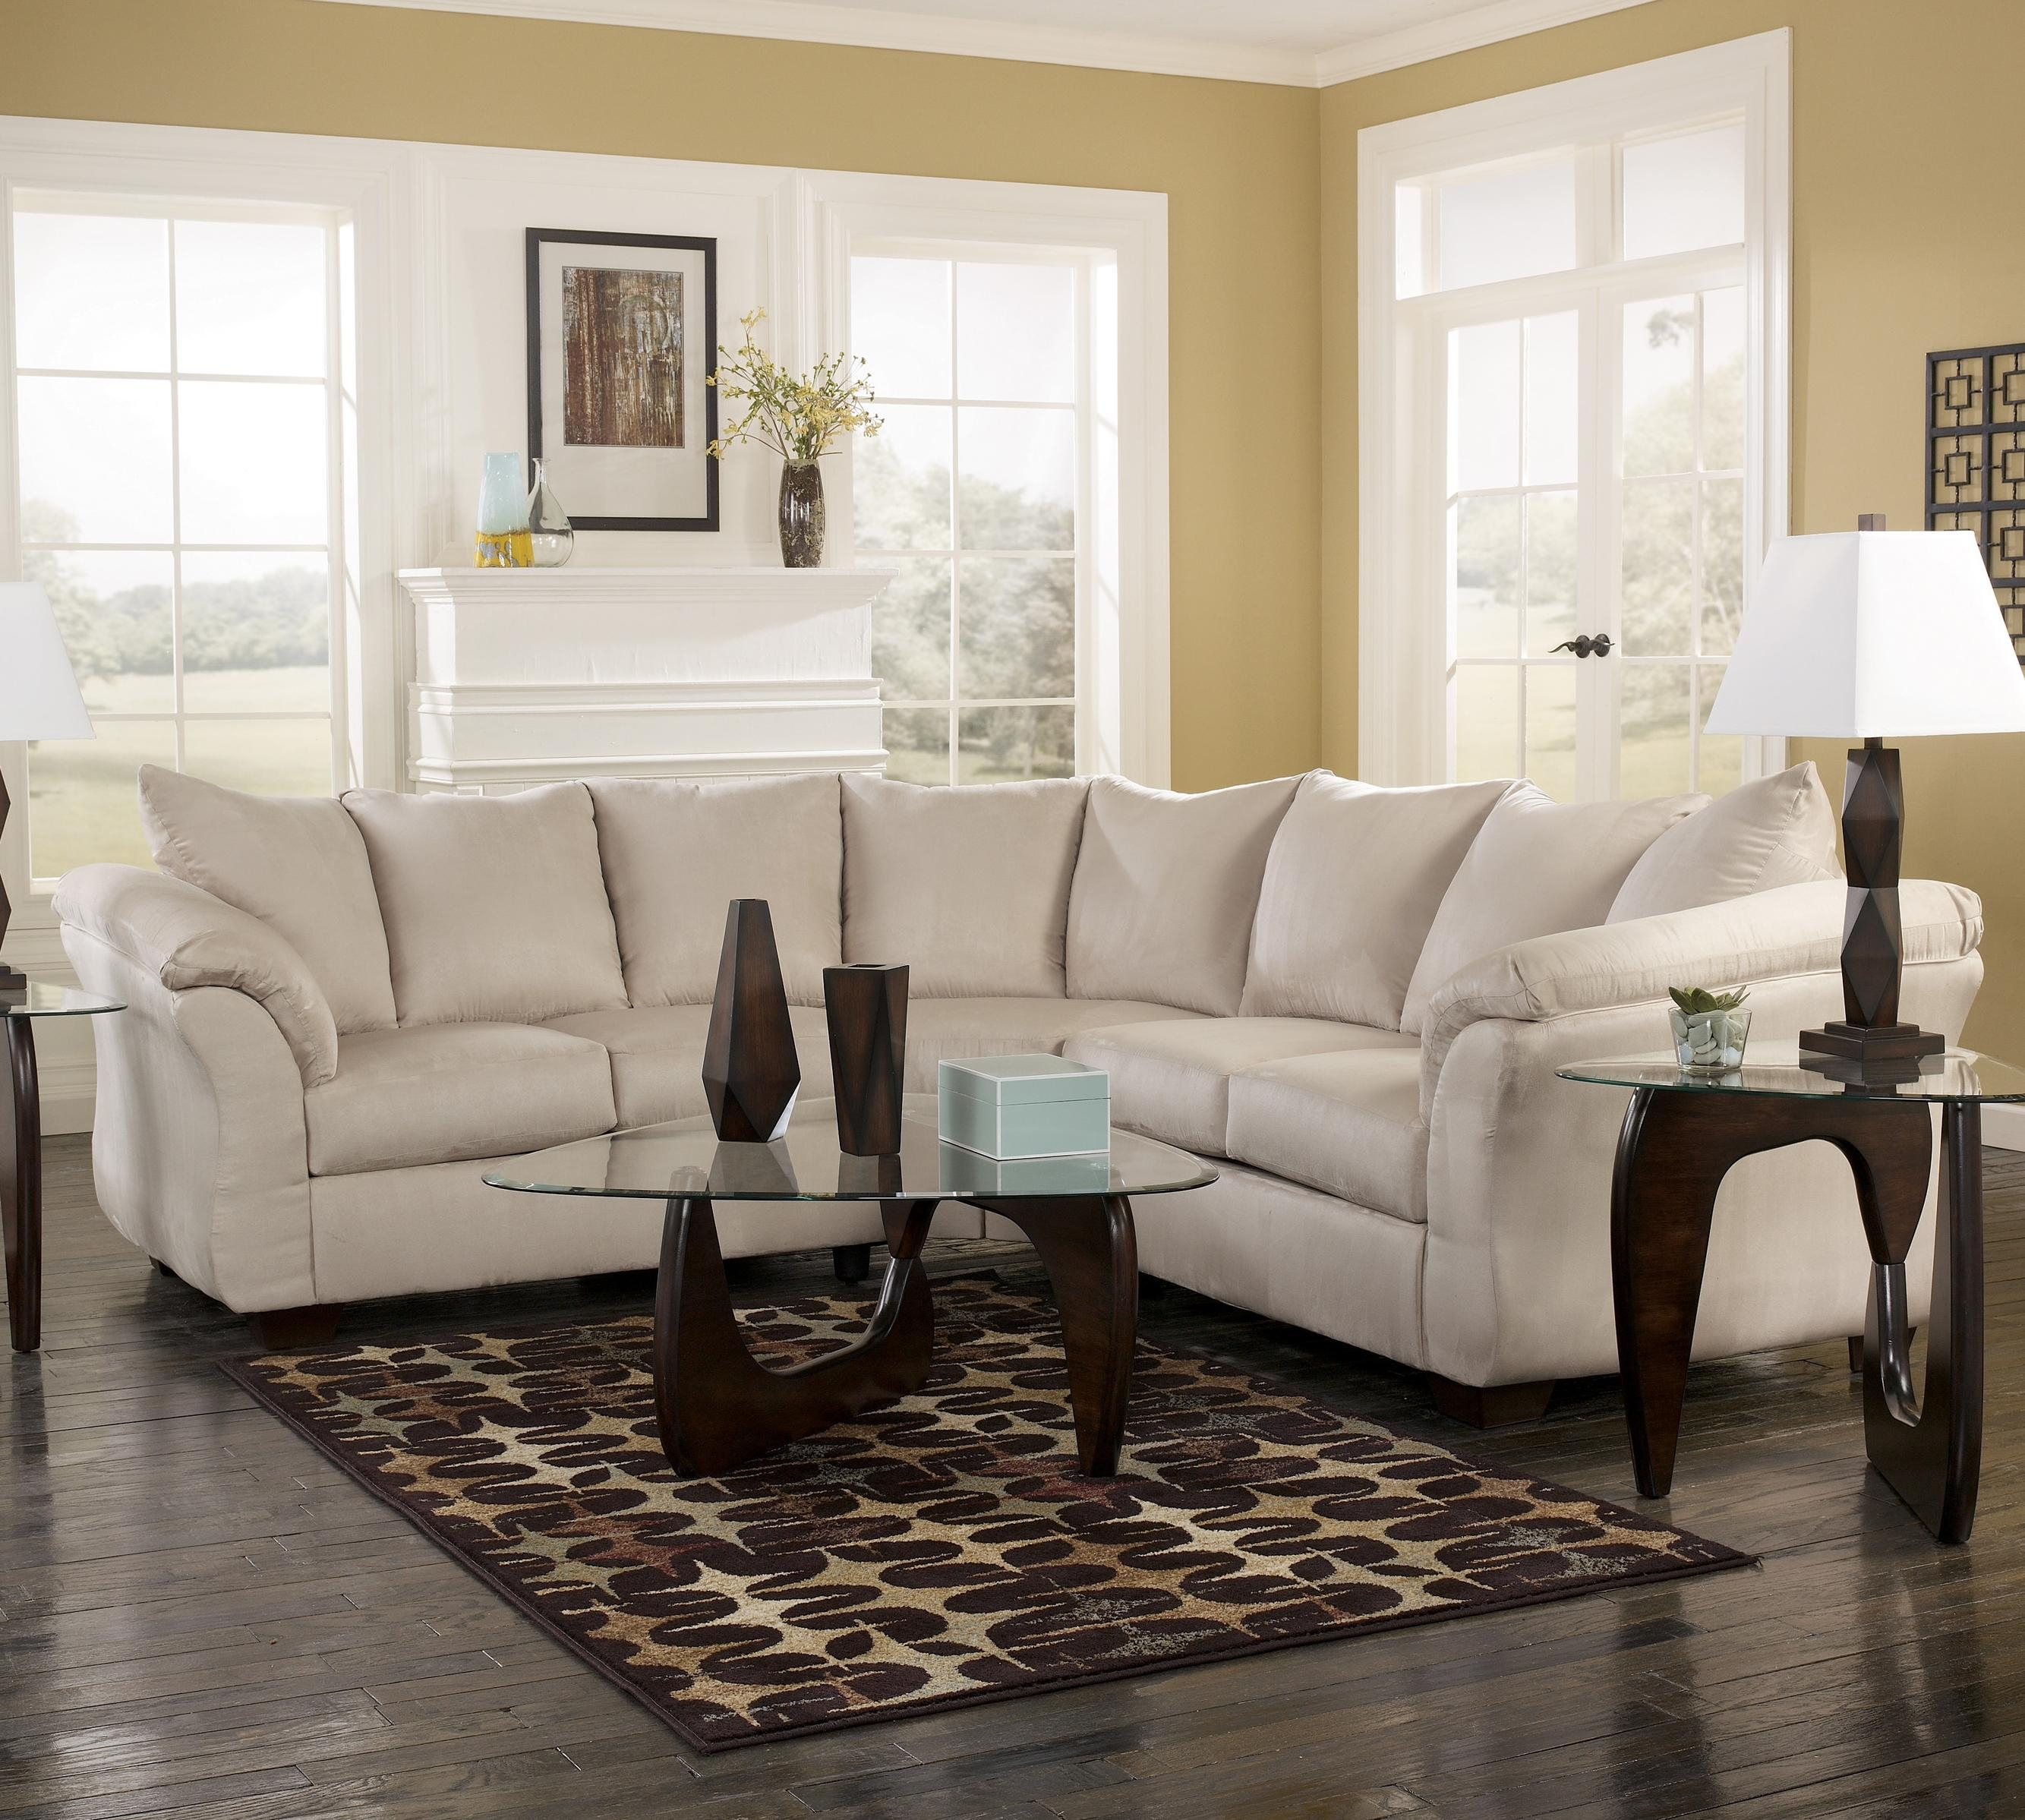 Contemporary Sectional Sofa With Sweeping Pillow Armssignature Within Signature Design Sectional Sofas (View 8 of 20)